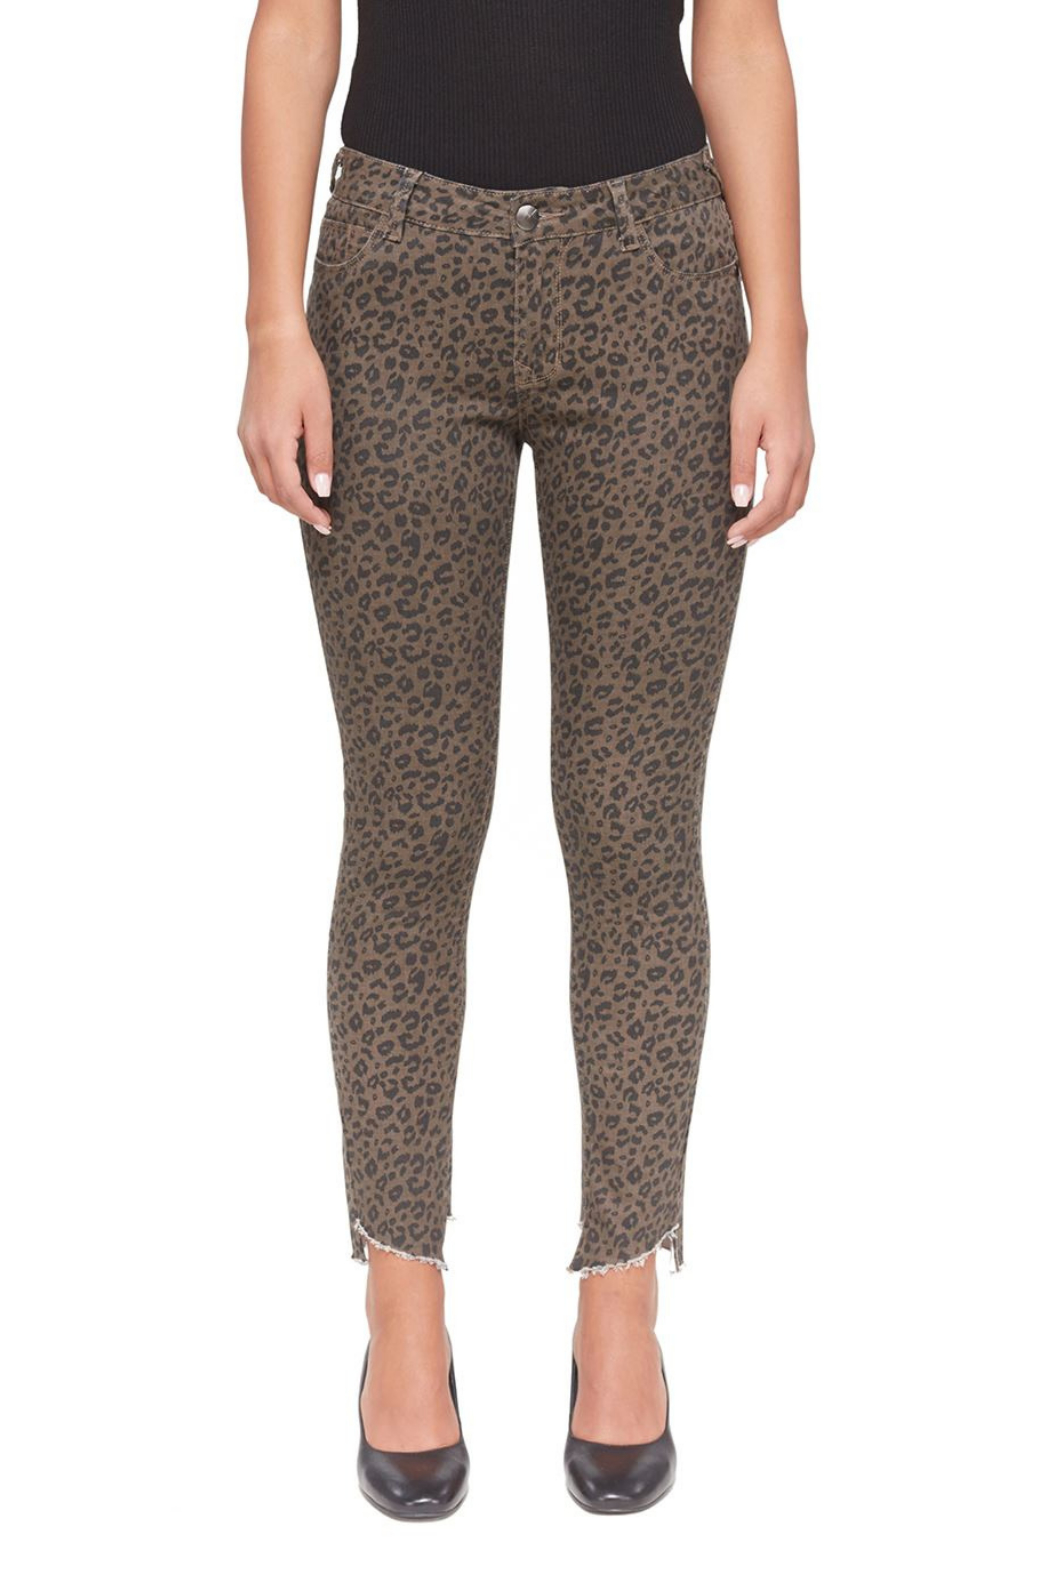 Lola Jeans Blair Leopard Mid-Rise Skinny Jean - Main Image